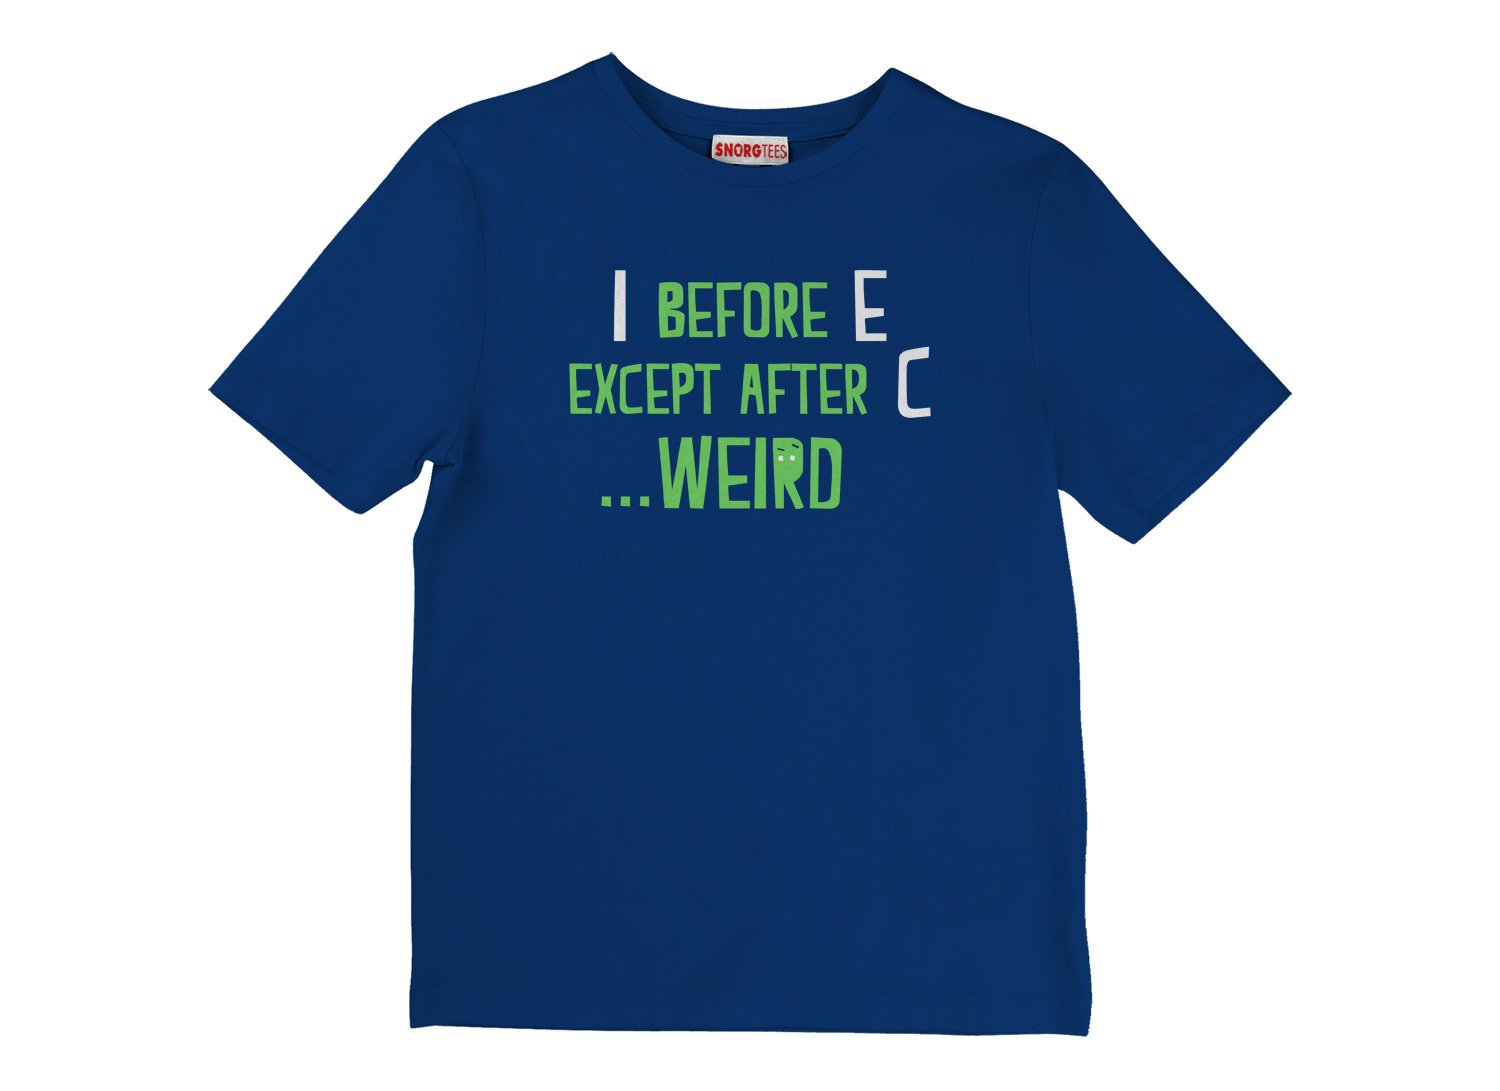 I Before E Except After C on Kids T-Shirt